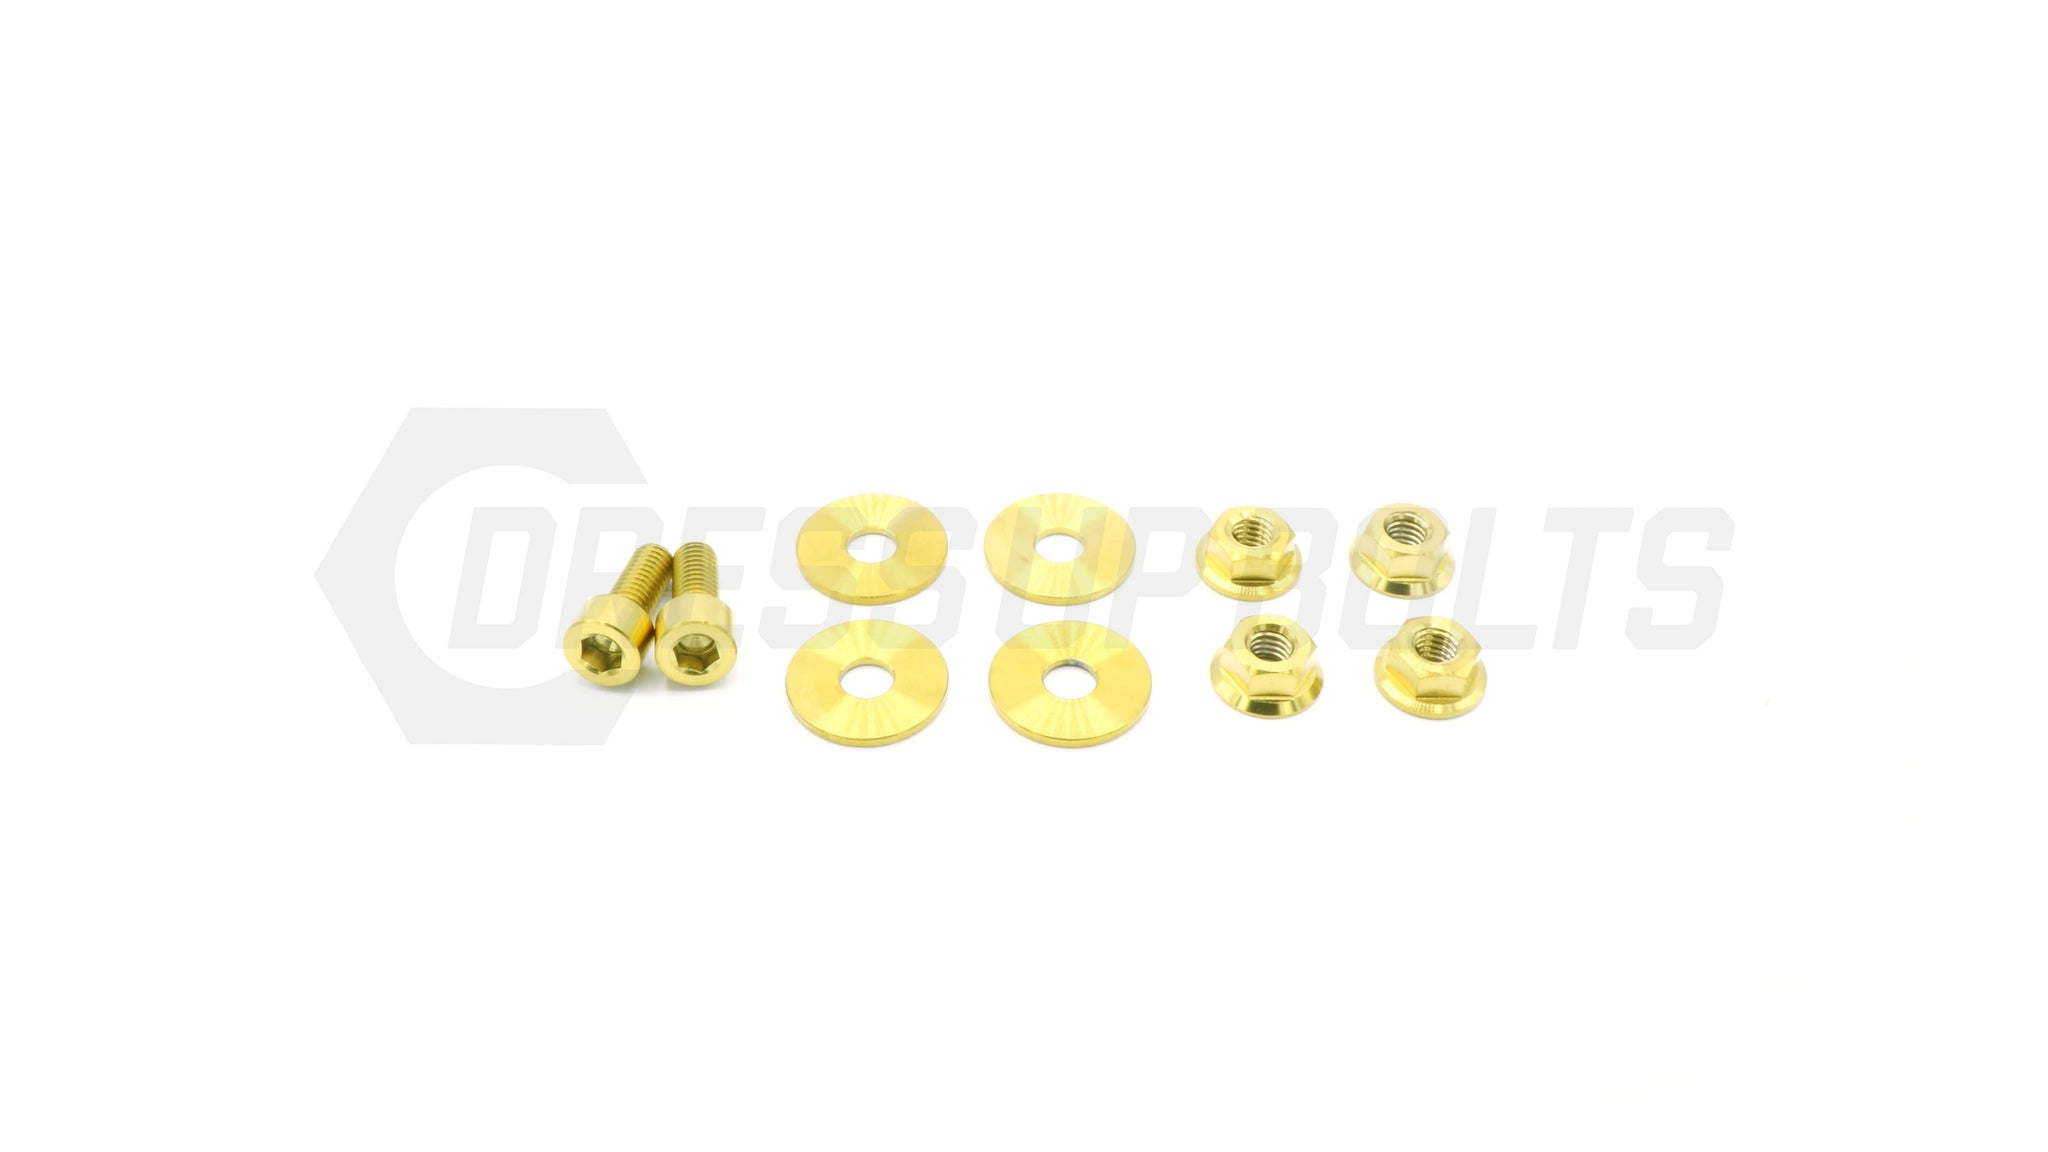 1JZ-GE | 2JZ-GE Titanium Dress Up Bolts Engine Cover Kit - DressUpBolts.com